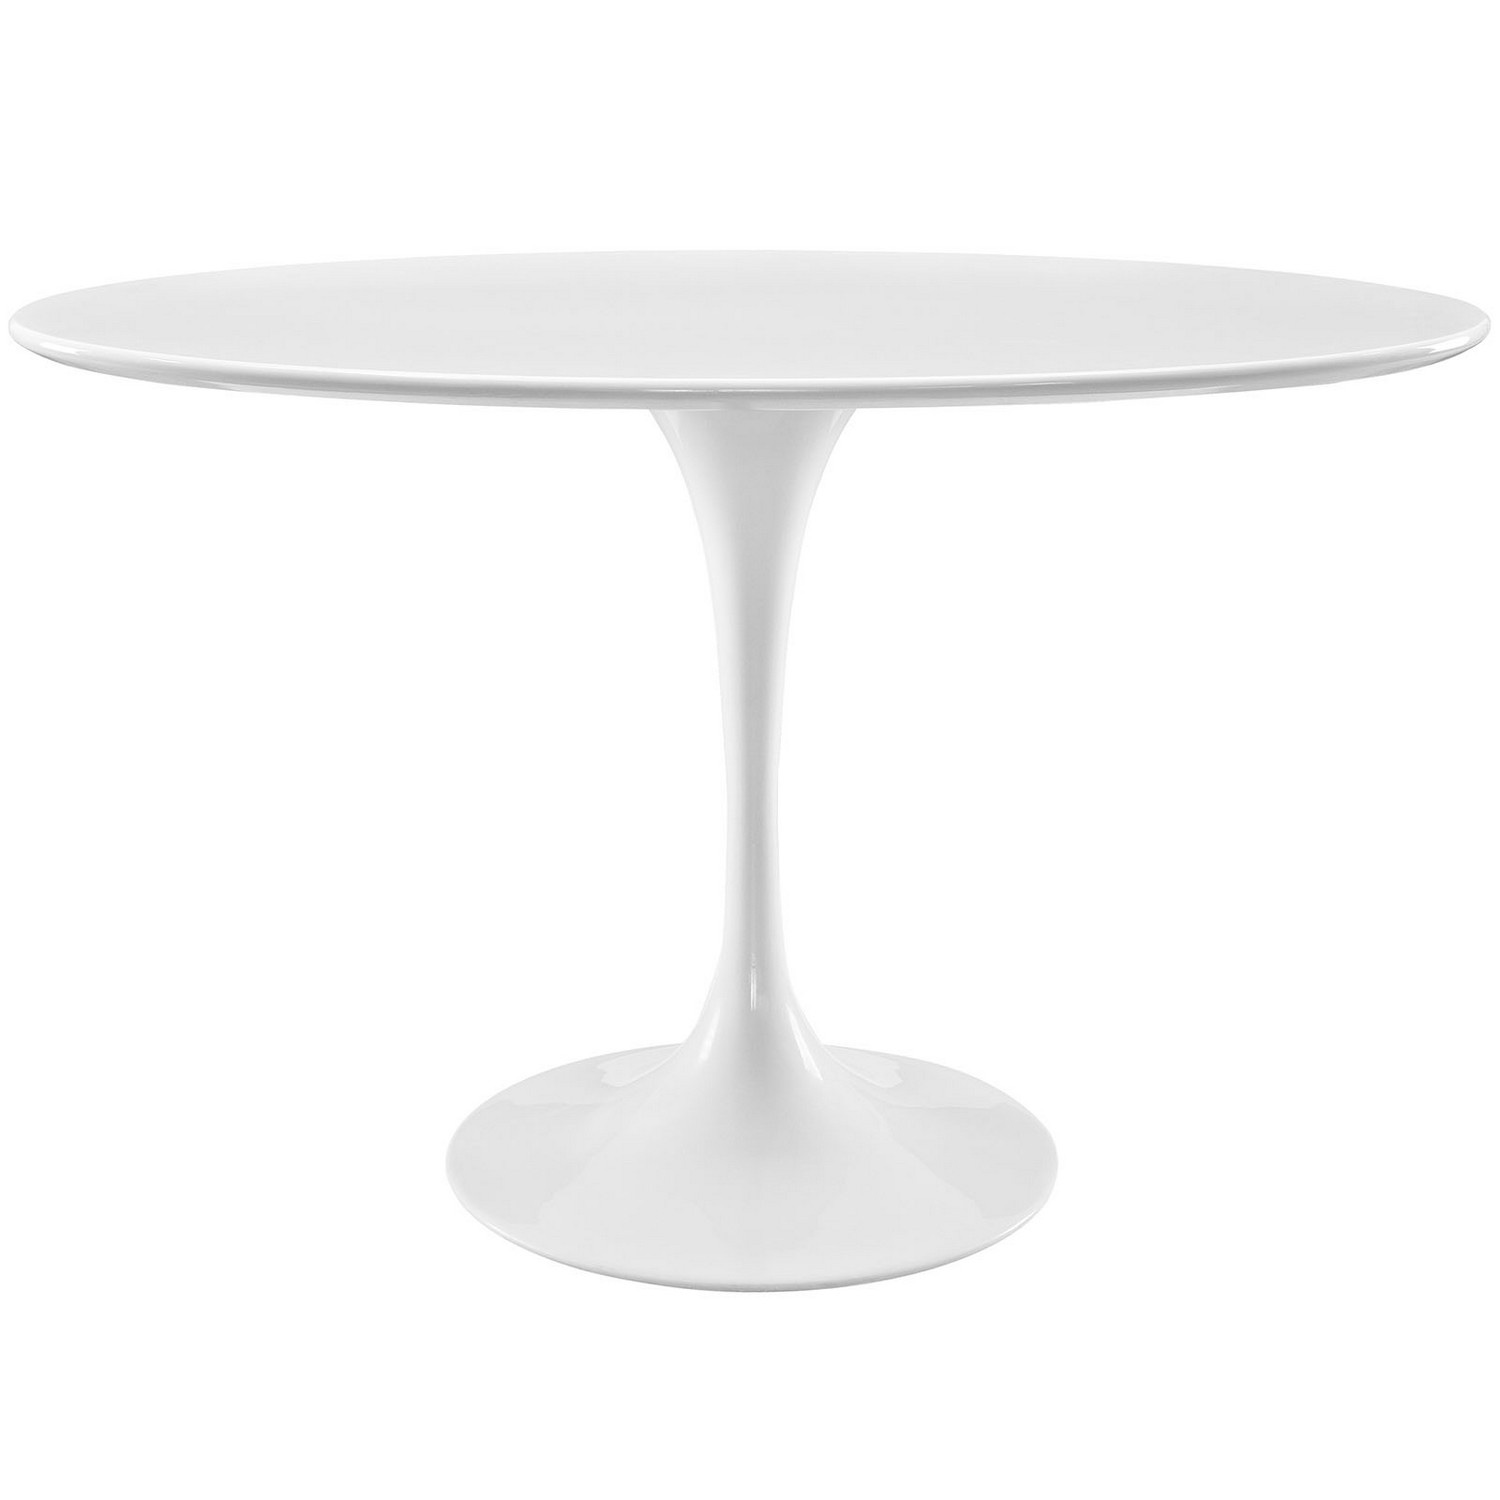 Modway Lippa 48-inch Oval-Shaped Wood Top Dining Table - White